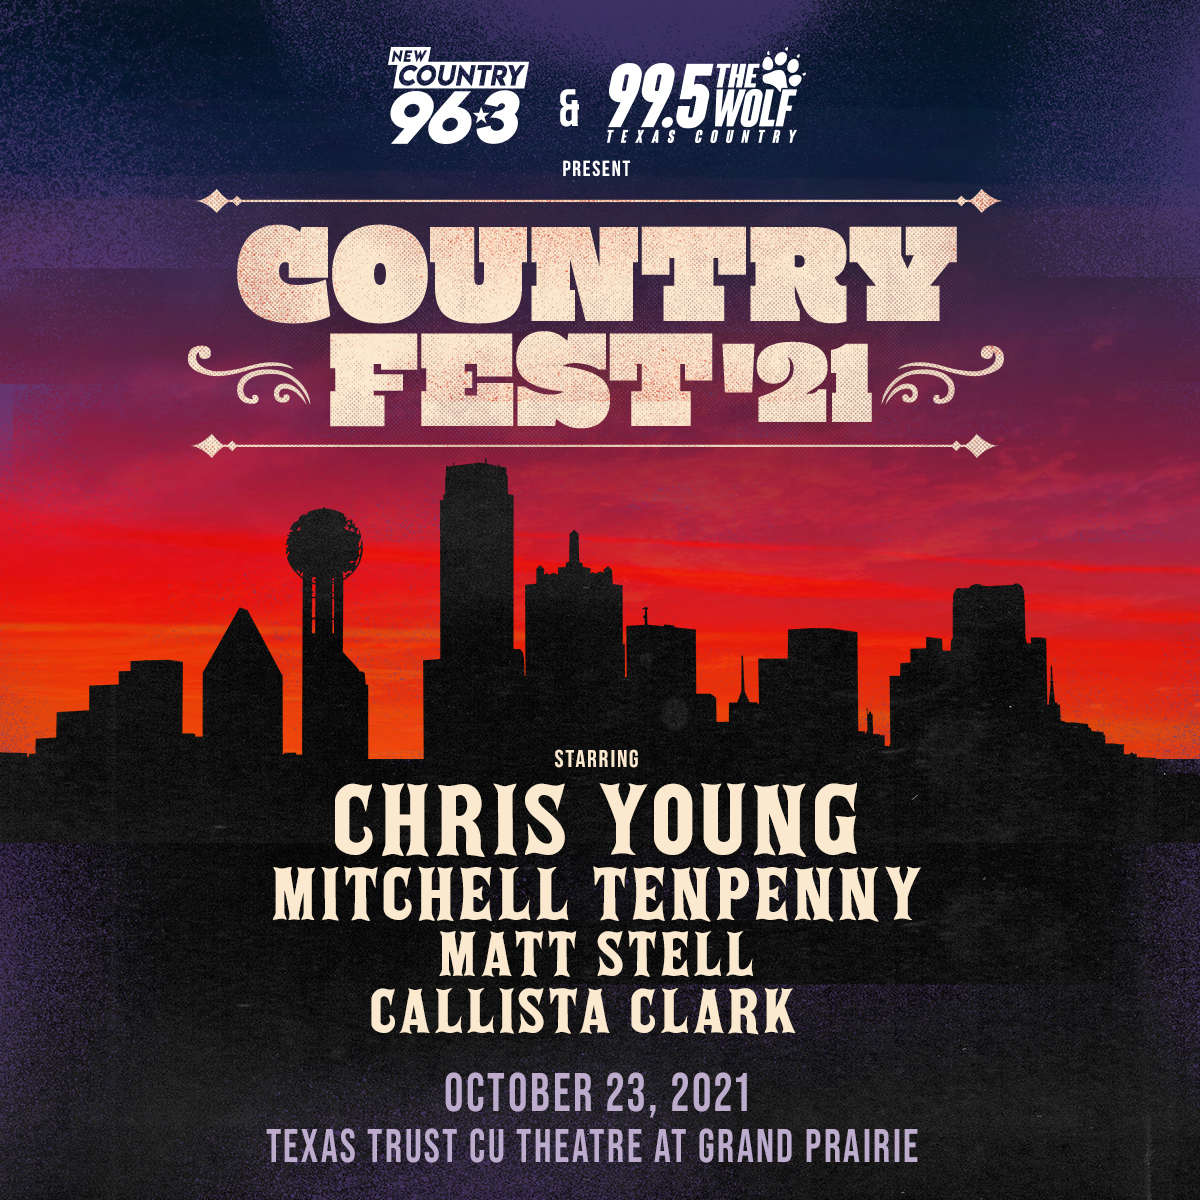 Country Fest '21 Winning Weekend, Sponsored by Don Herring Mitsubishi